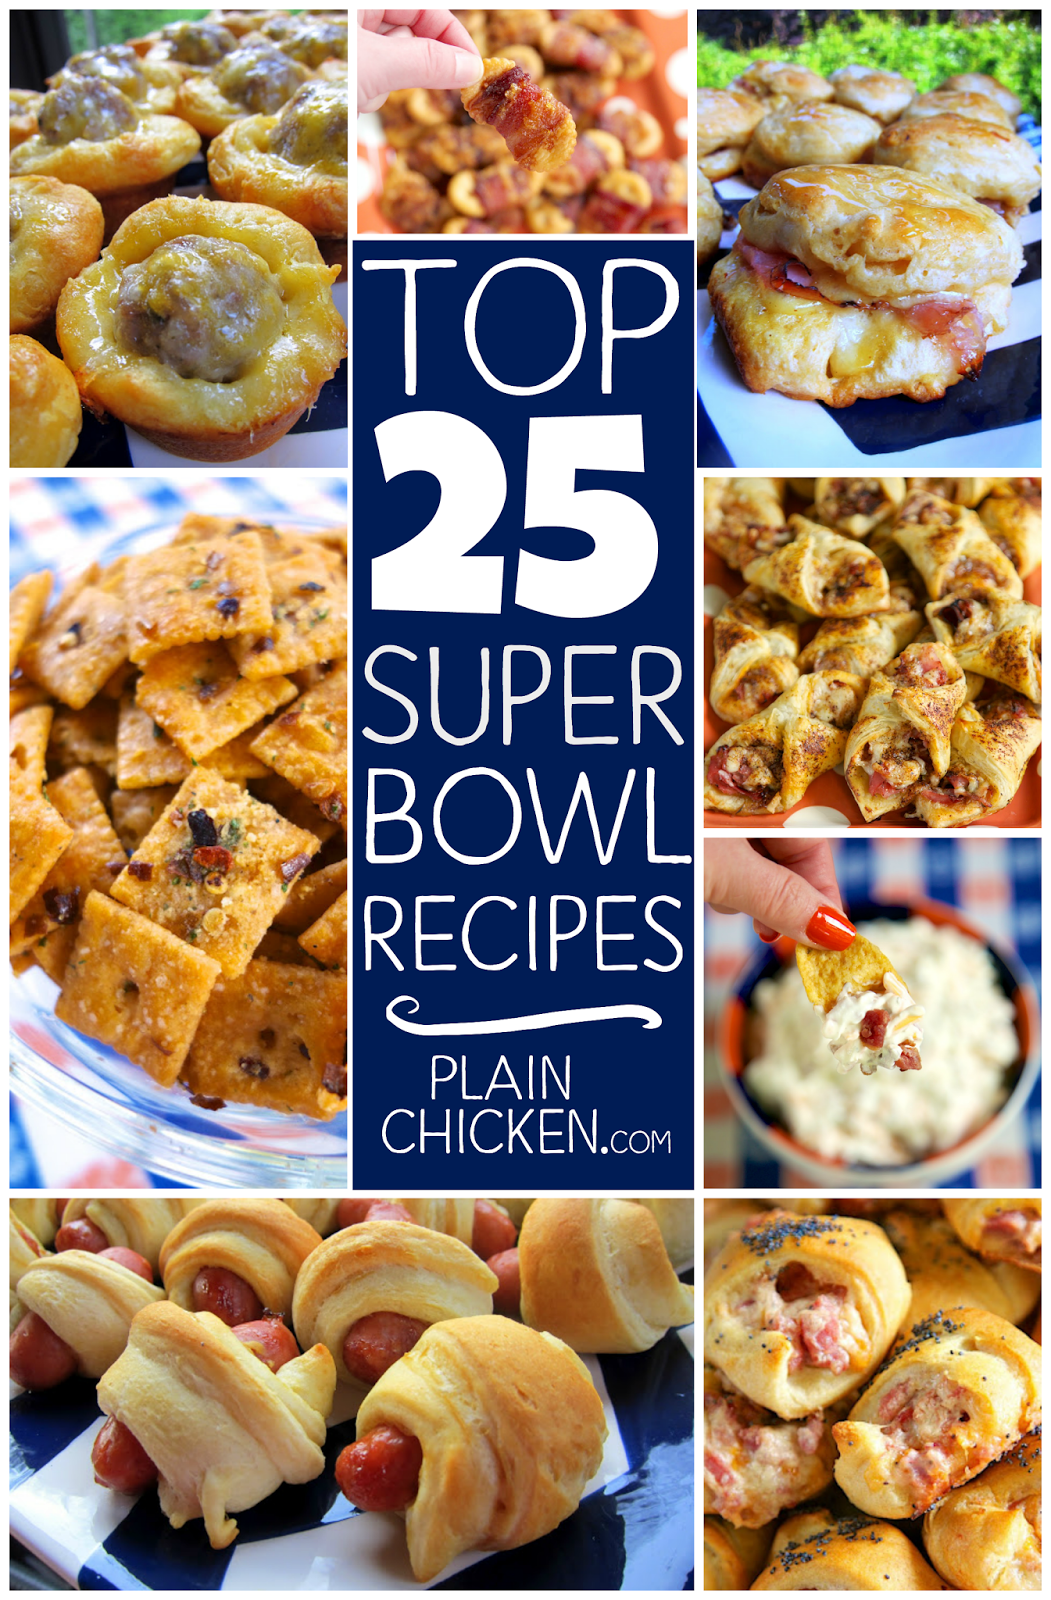 Top 25 Super Bowl Recipes - the best recipes for your Super Bowl party! All recipes are guaranteed to be a hit! Everyone will rave about them!! #tailgatefood